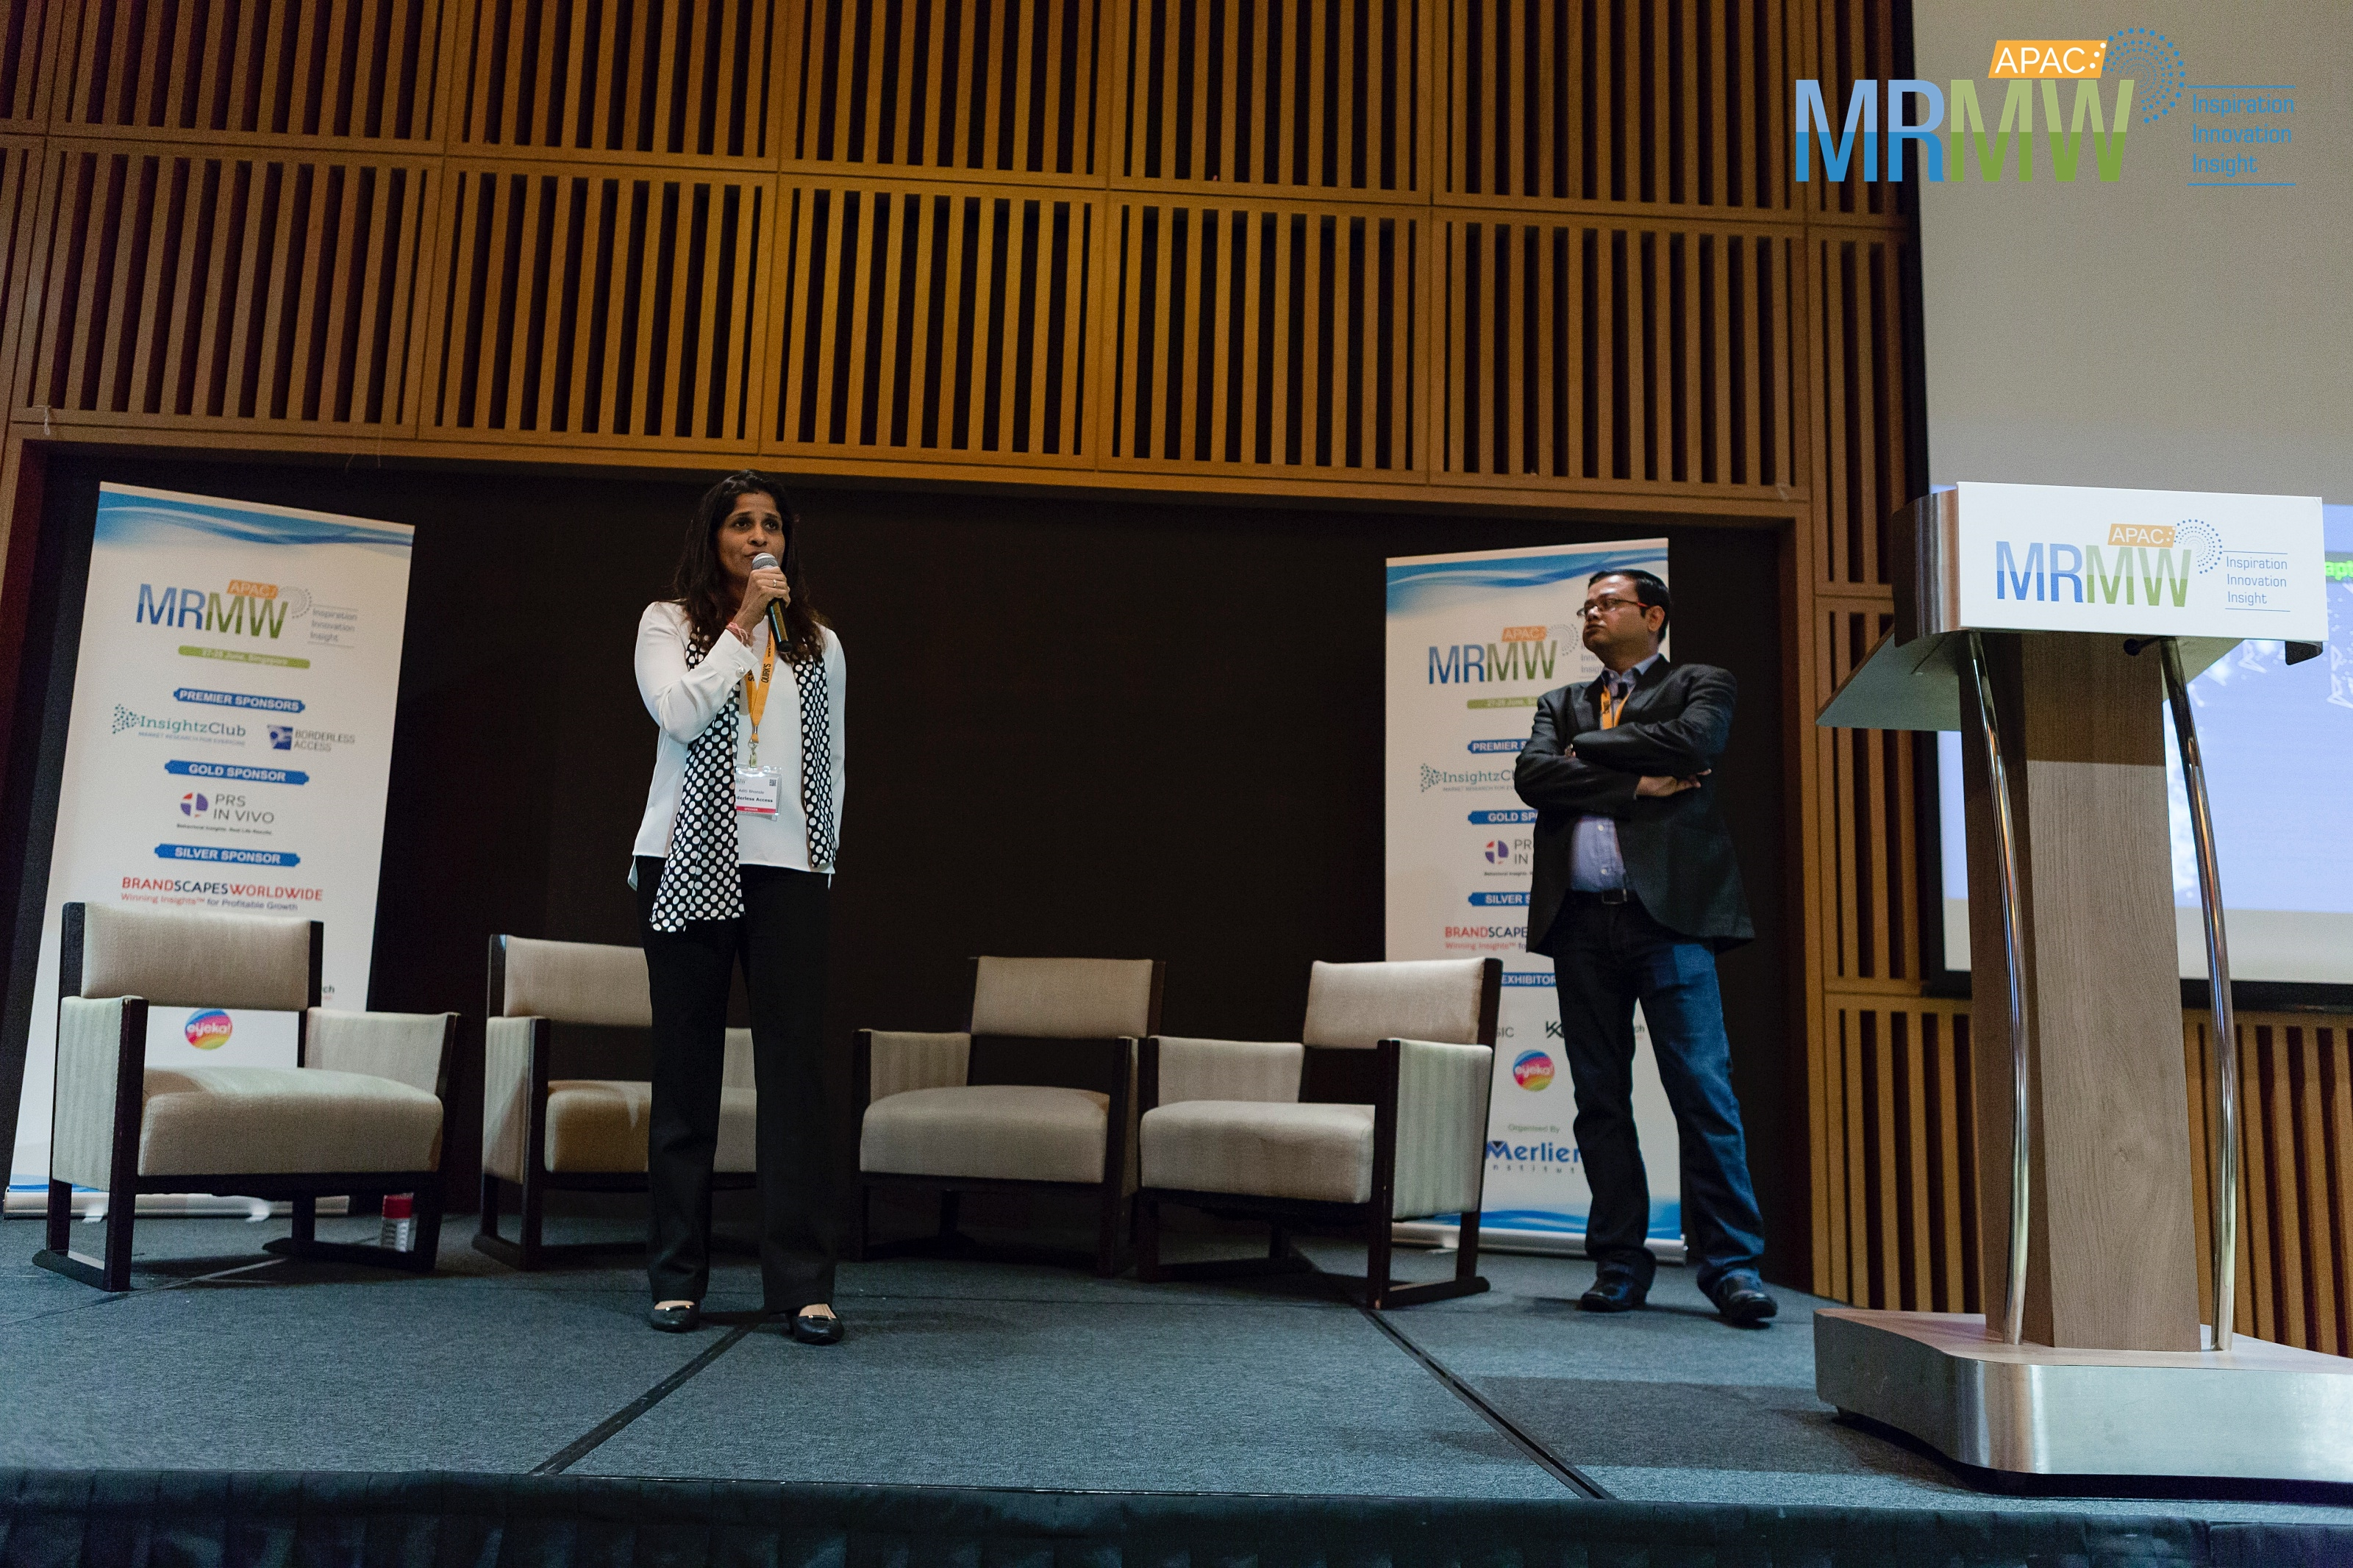 Sayantha Paul and Aditi Bhonsle from Borderless Access at MRMW APAC 2018